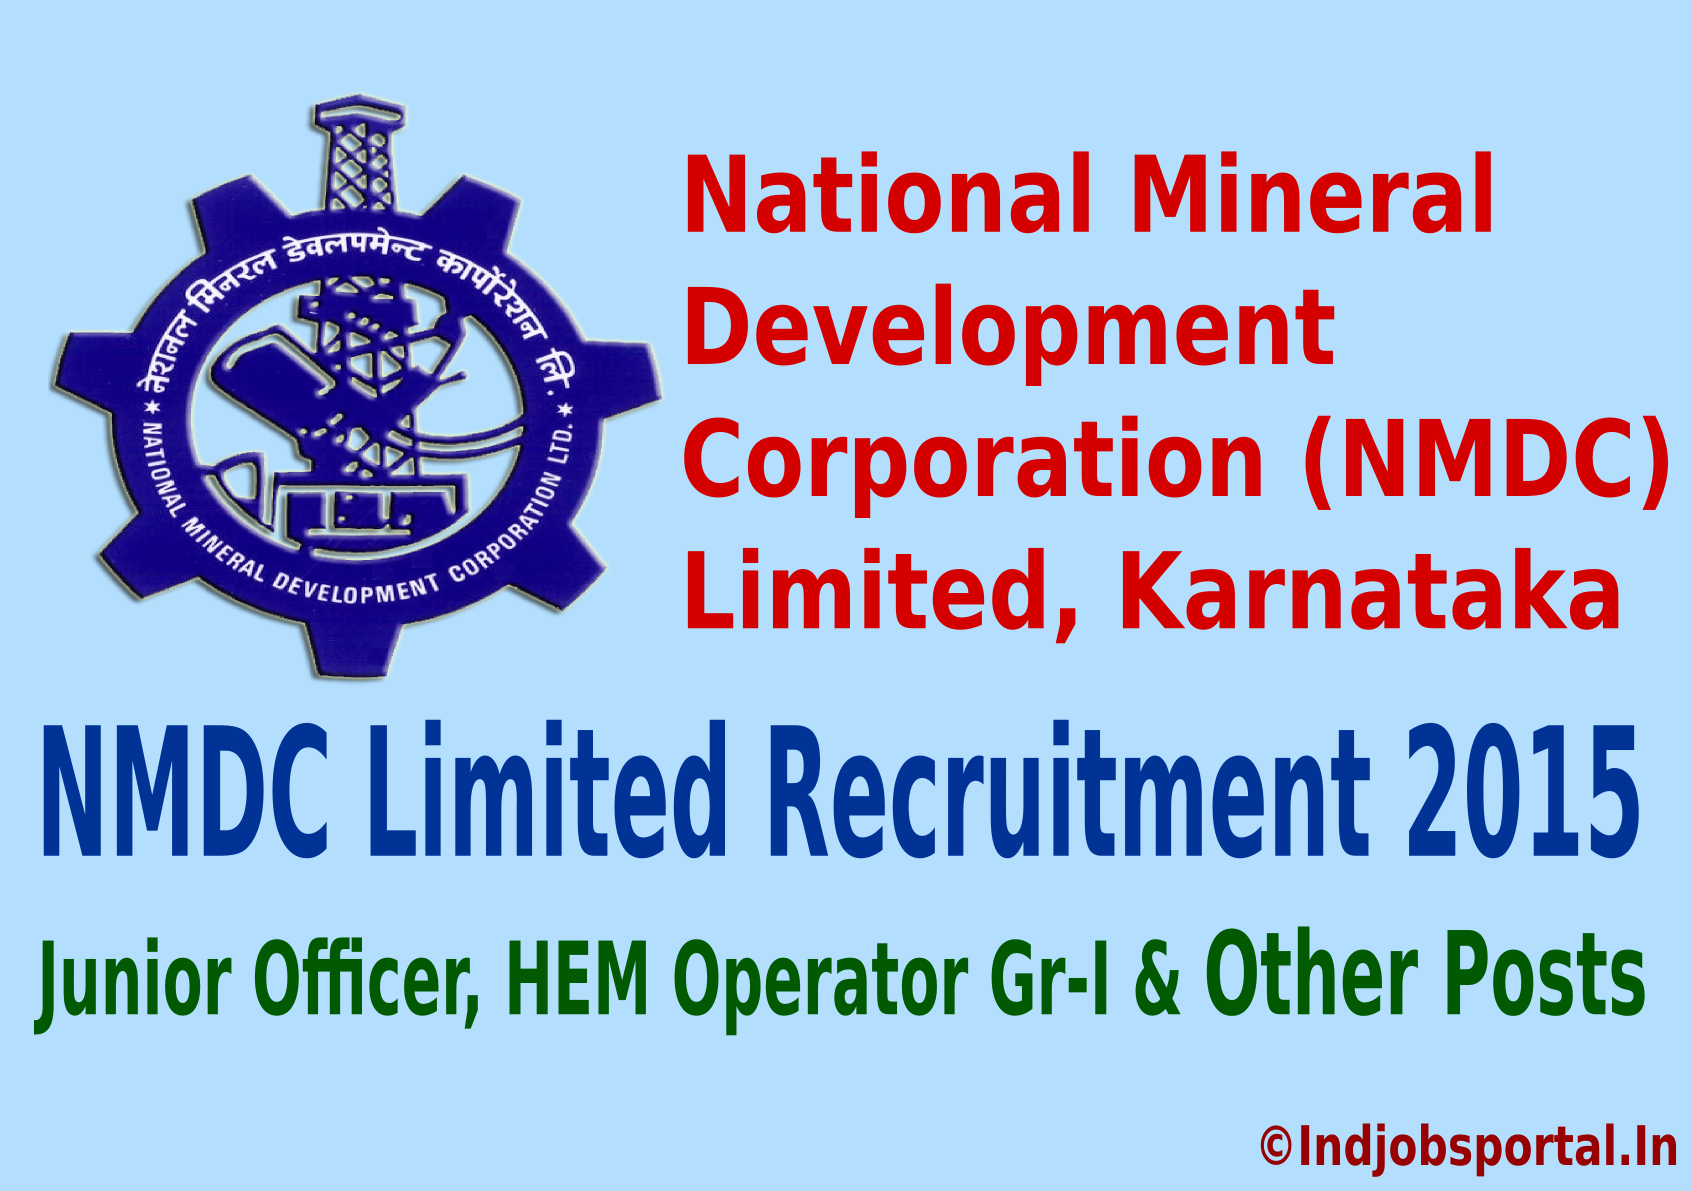 NMDC Limited Recruitment 2015 For 311 Junior Officer, HEM Operator Gr-I & Other Posts